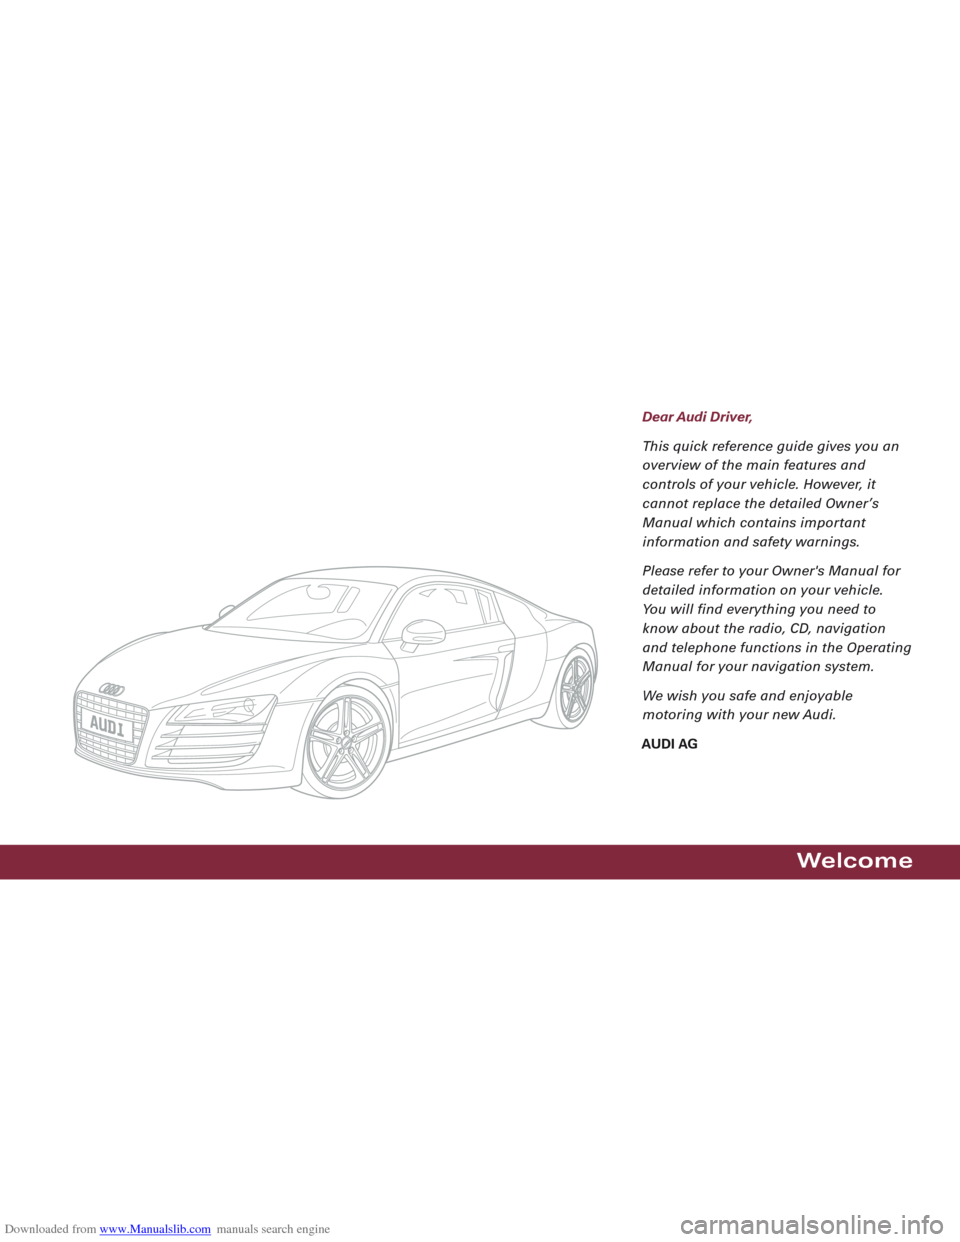 AUDI R8 2008 1.G Quick Reference Guide